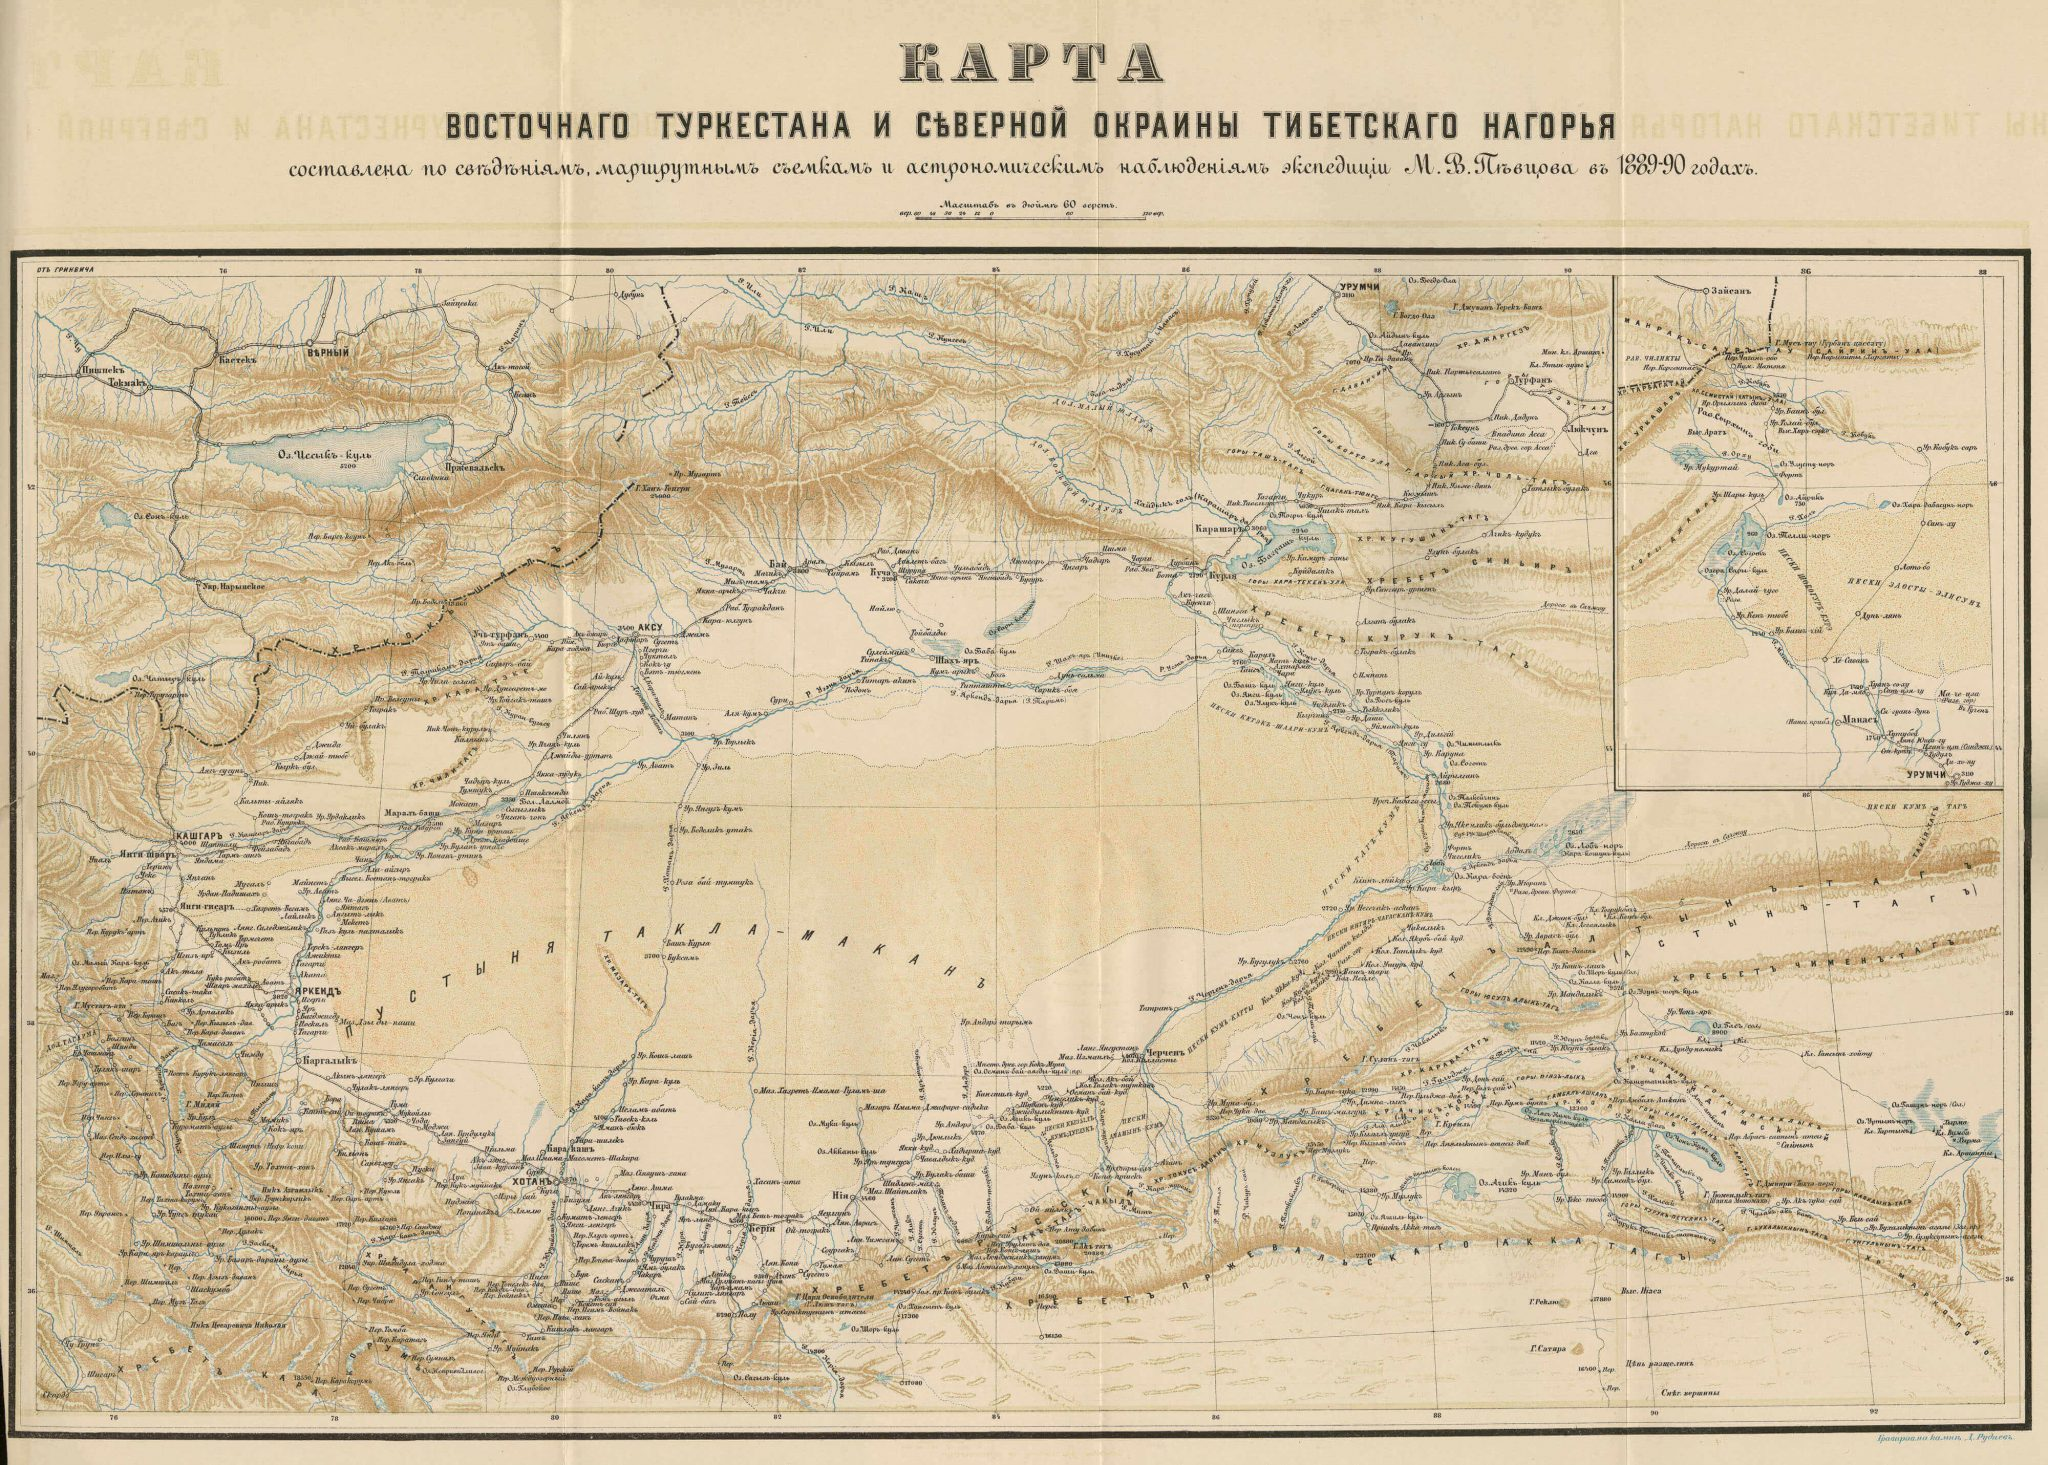 Map of Eastern Turkestan and the northern territory of the Tibetan Plateau 1895